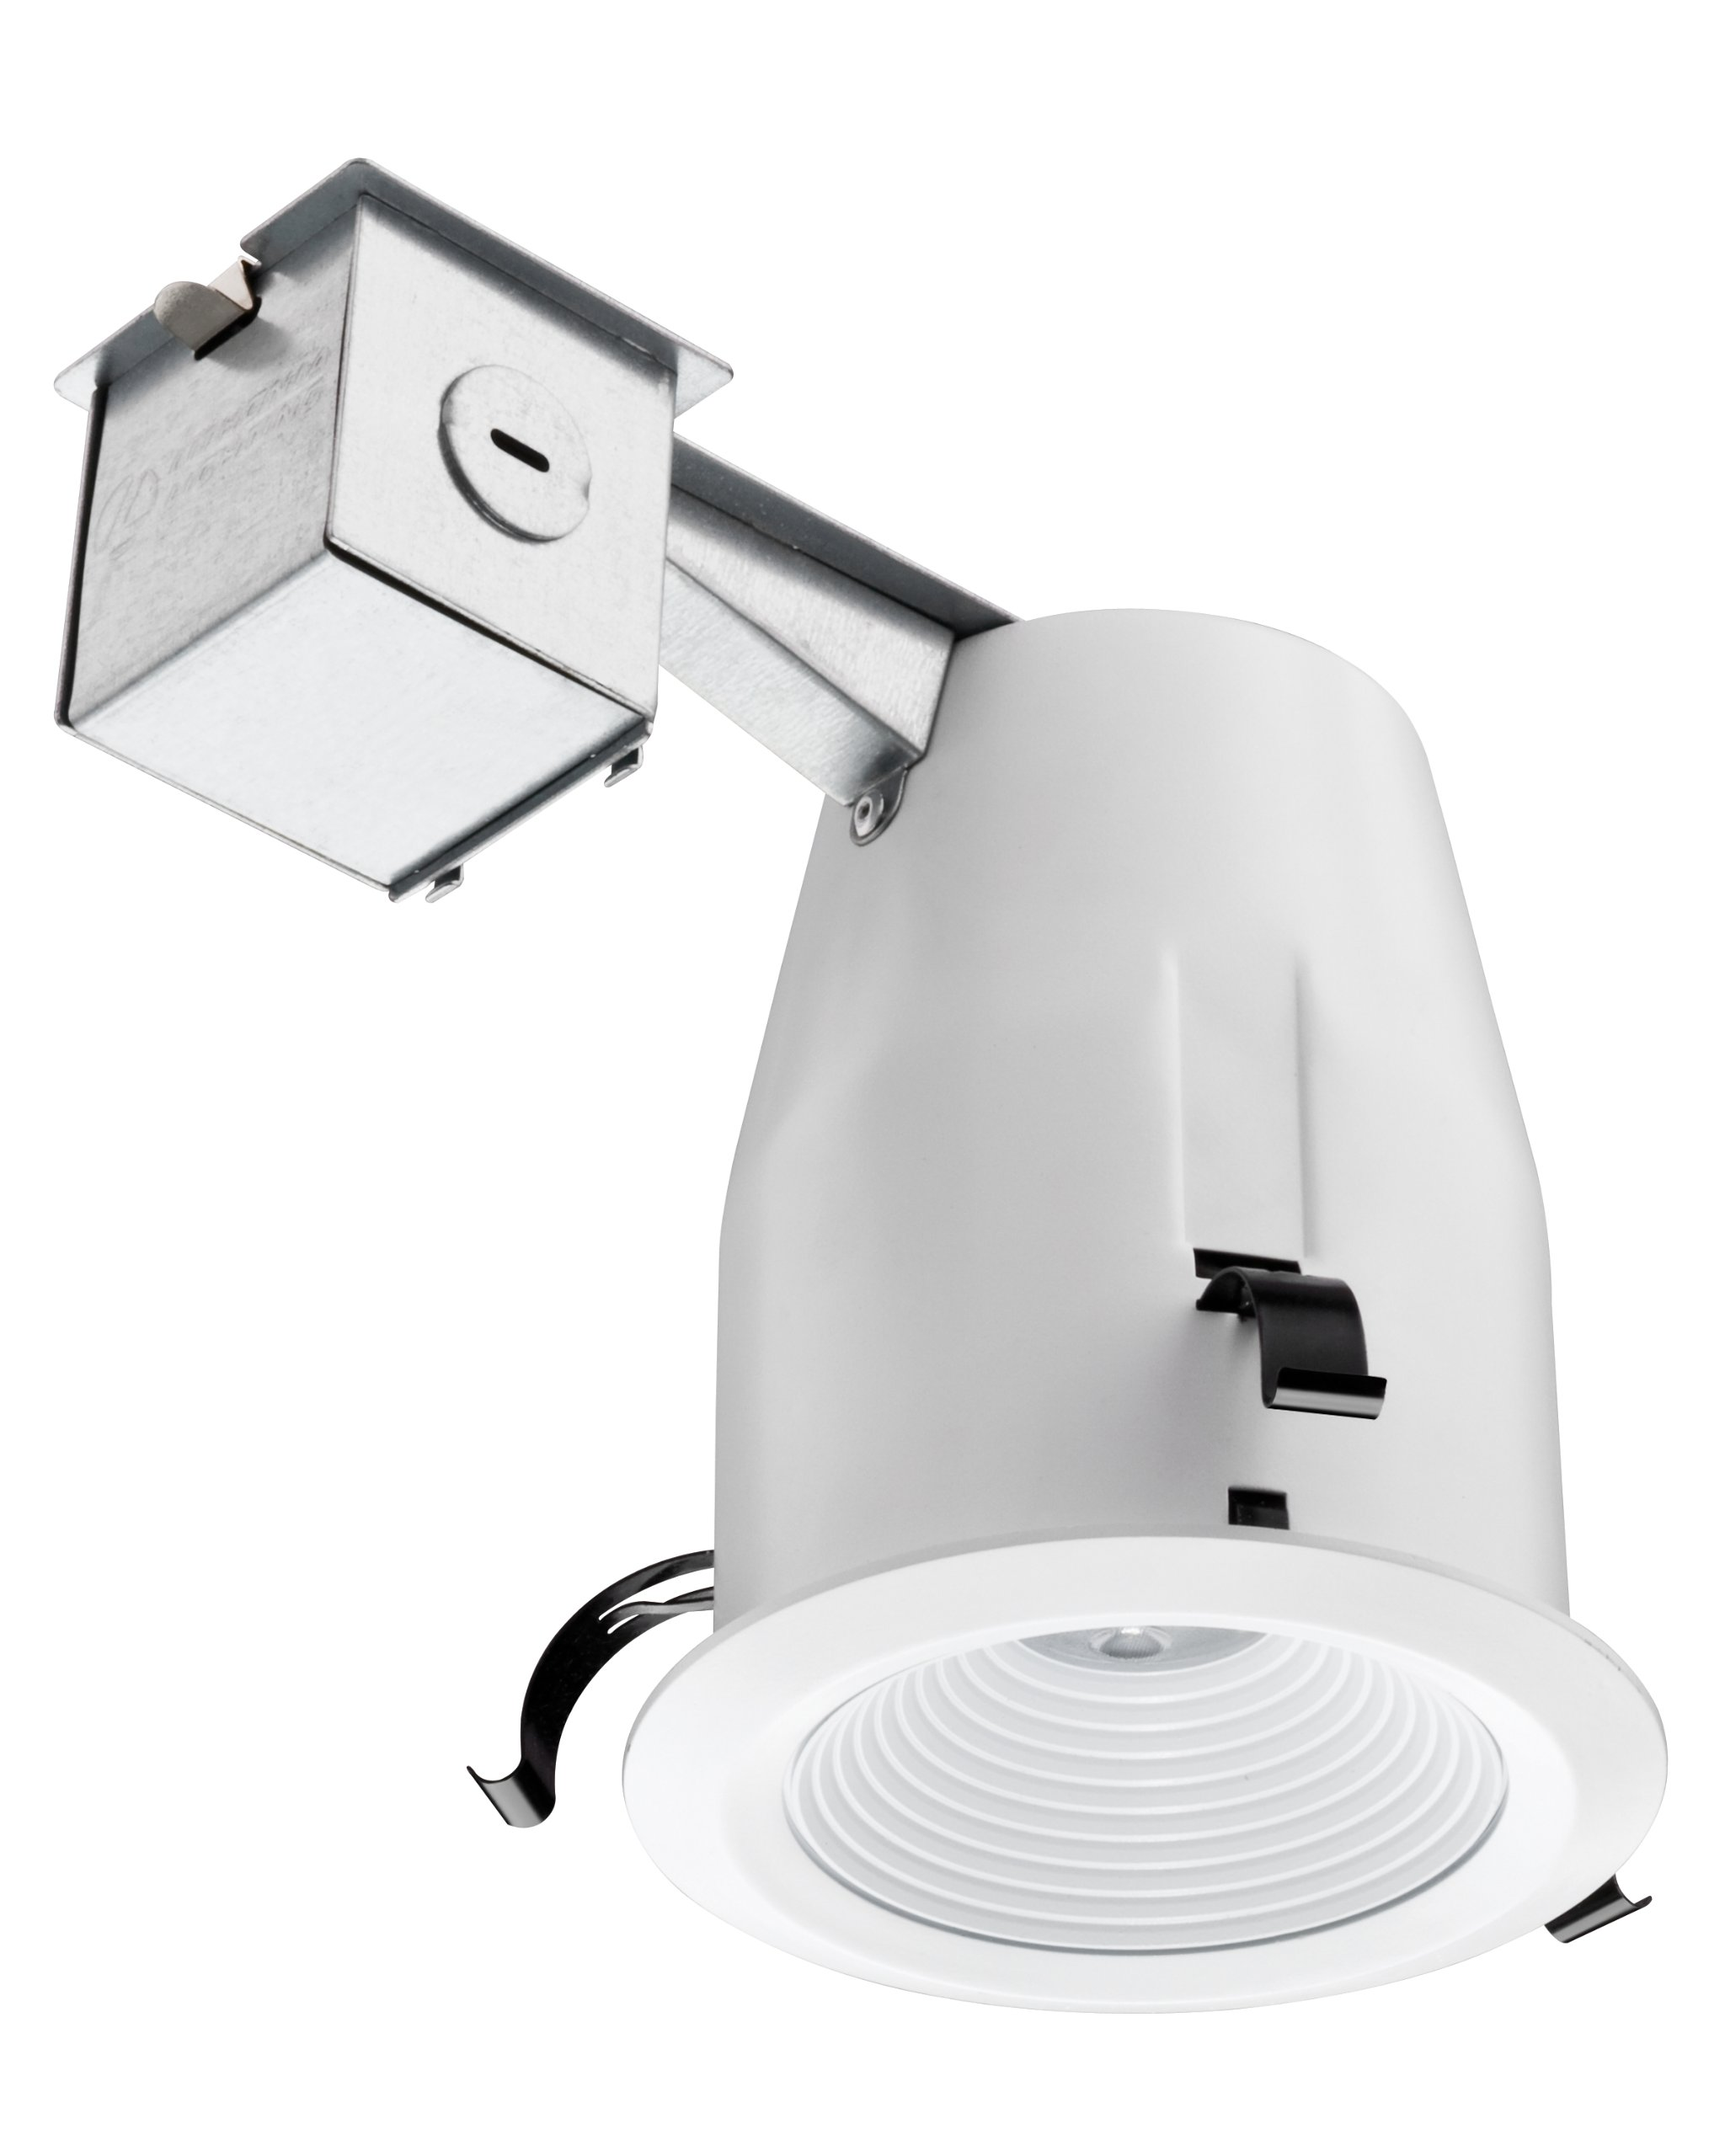 Lithonia Lighting 4-Inch Recessed Baffle Integrated LED Lighting Kit, Matte White